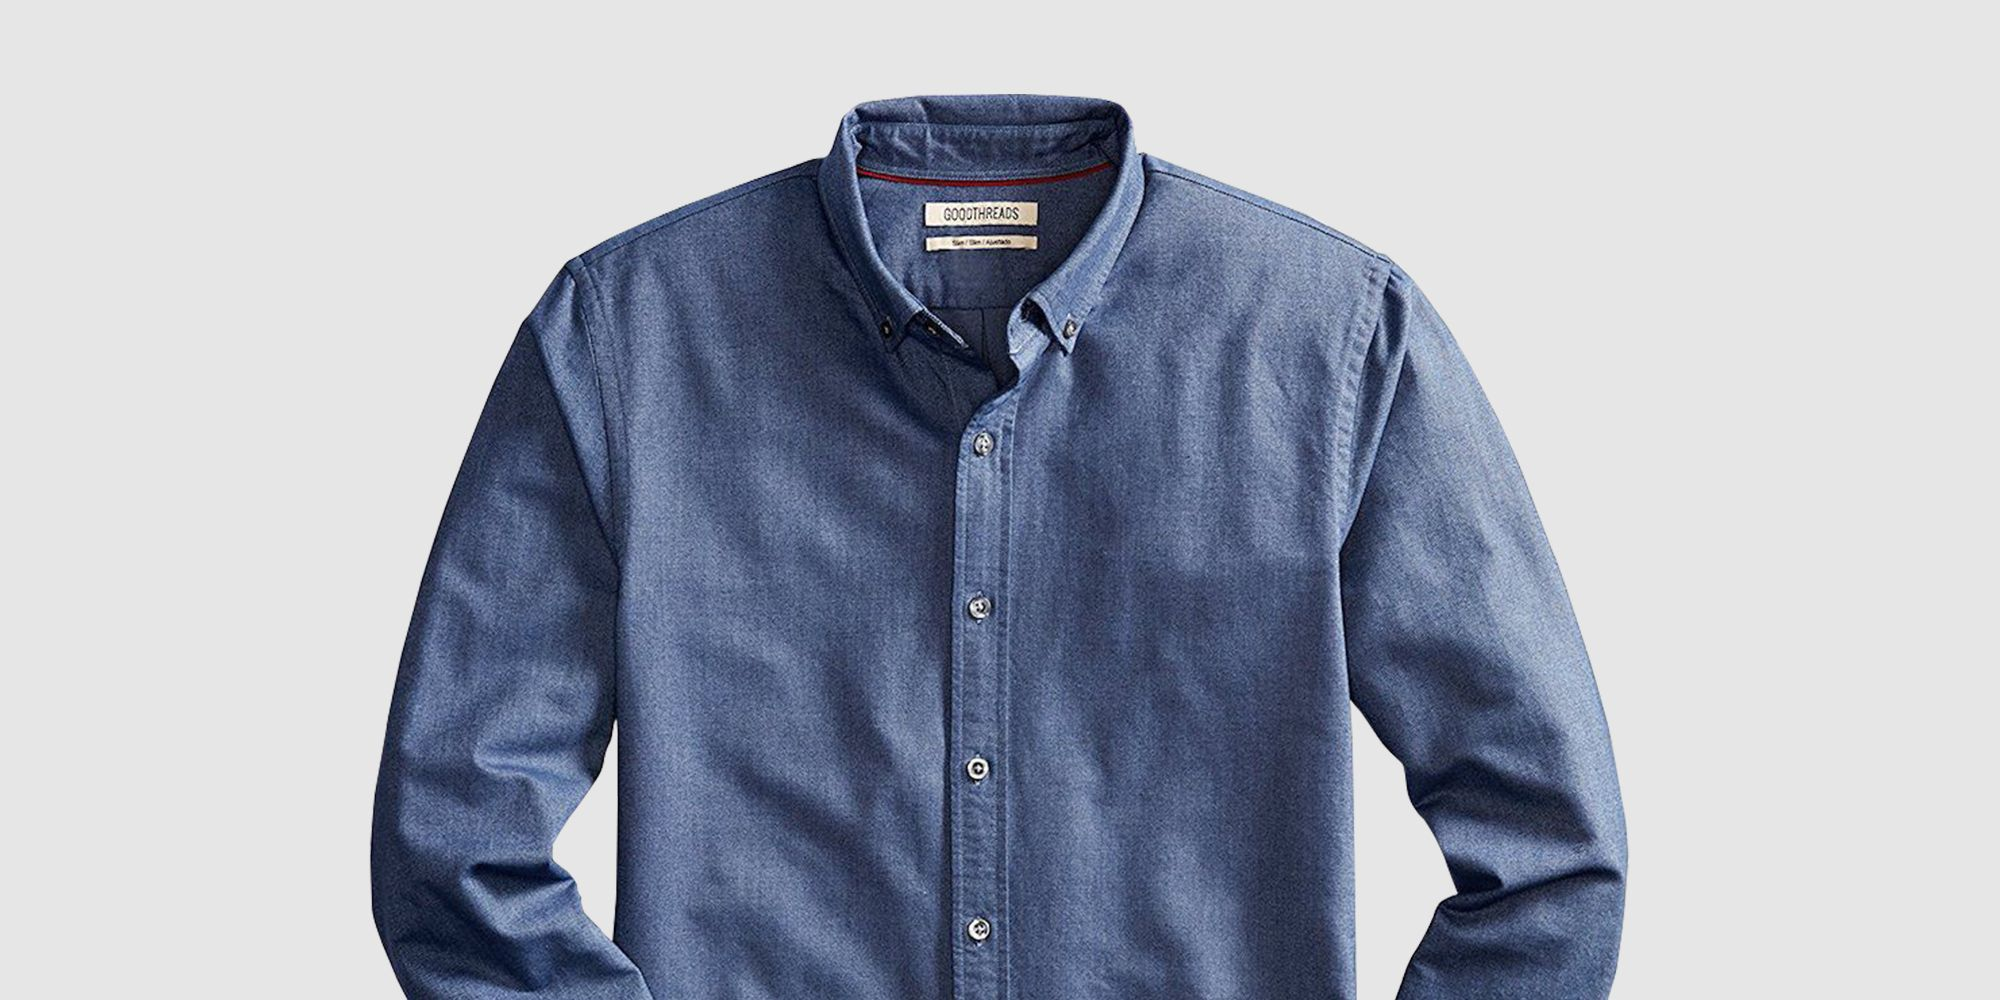 Button Down Shirts Are Currently Up to 40% Off On Amazon